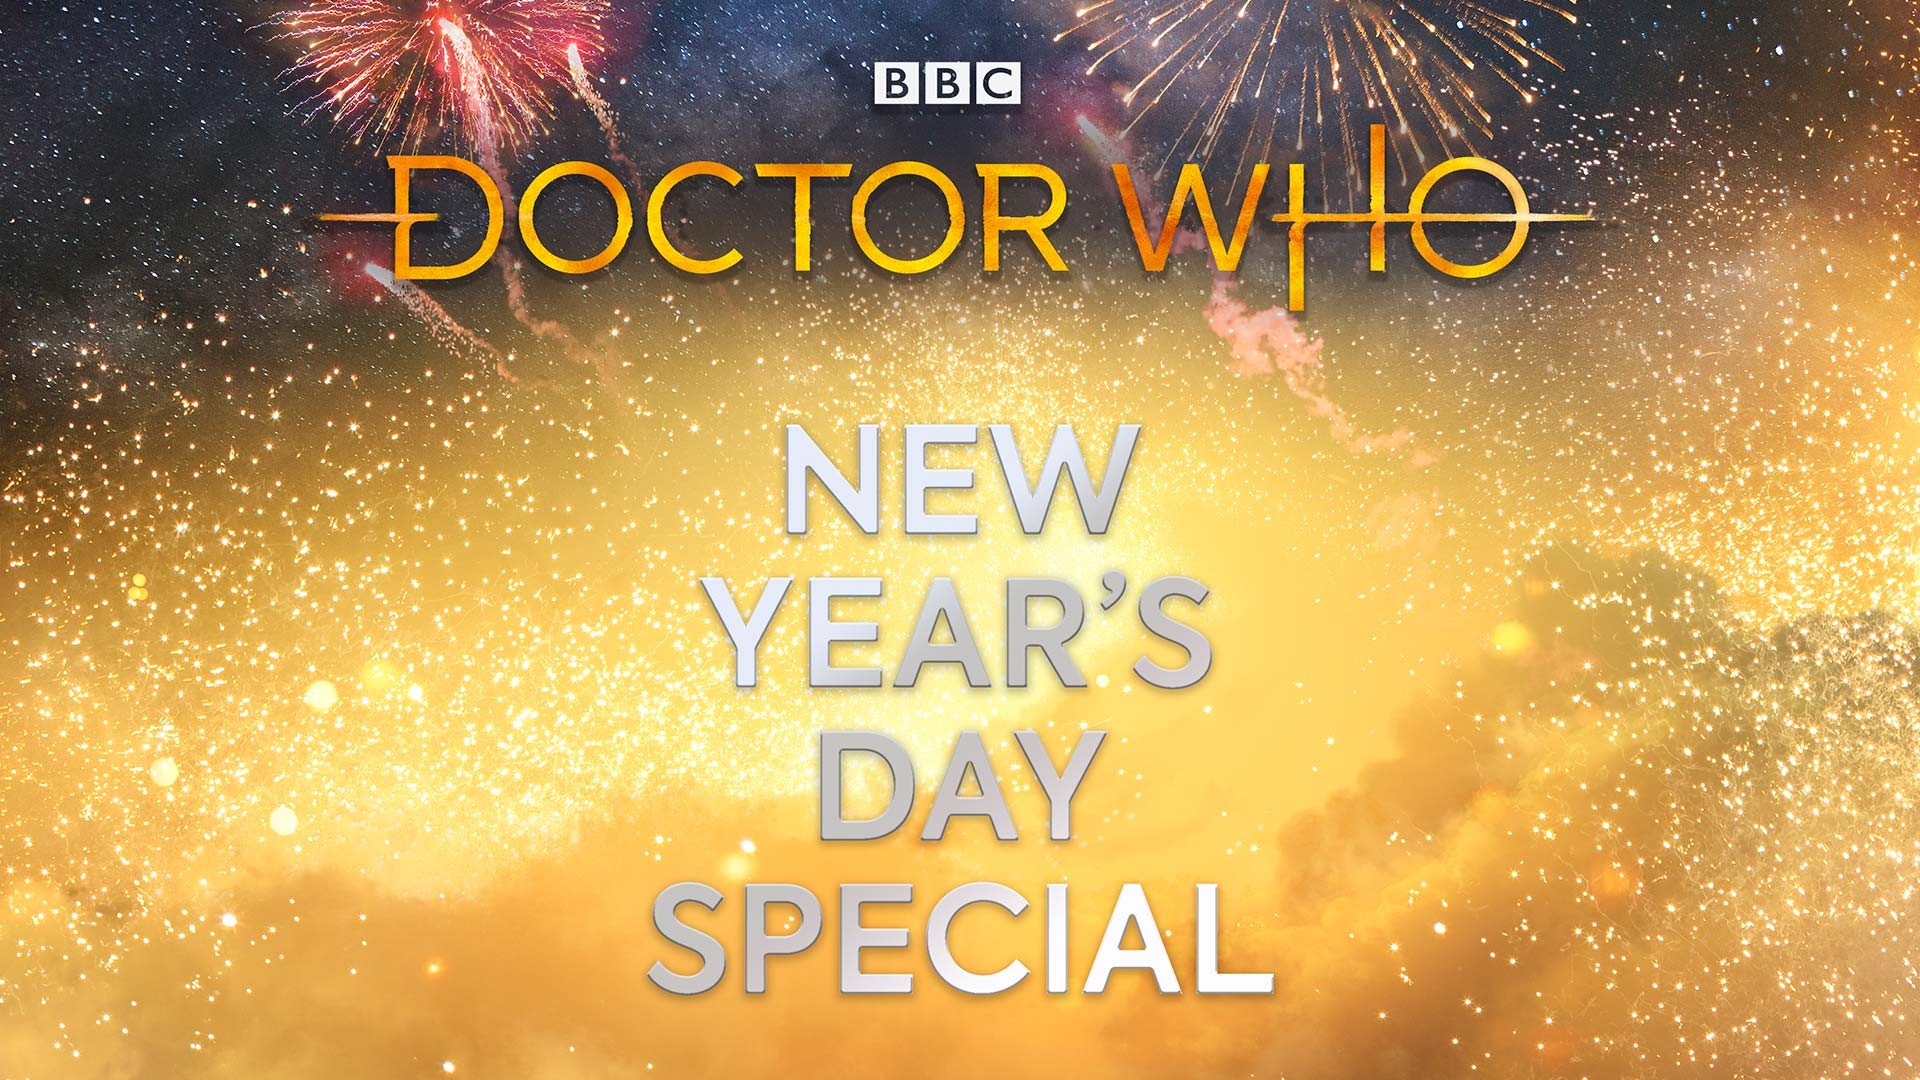 Dr Who Christmas Special 2019.An All New Doctor Who New Year S Day Special Will Ring In